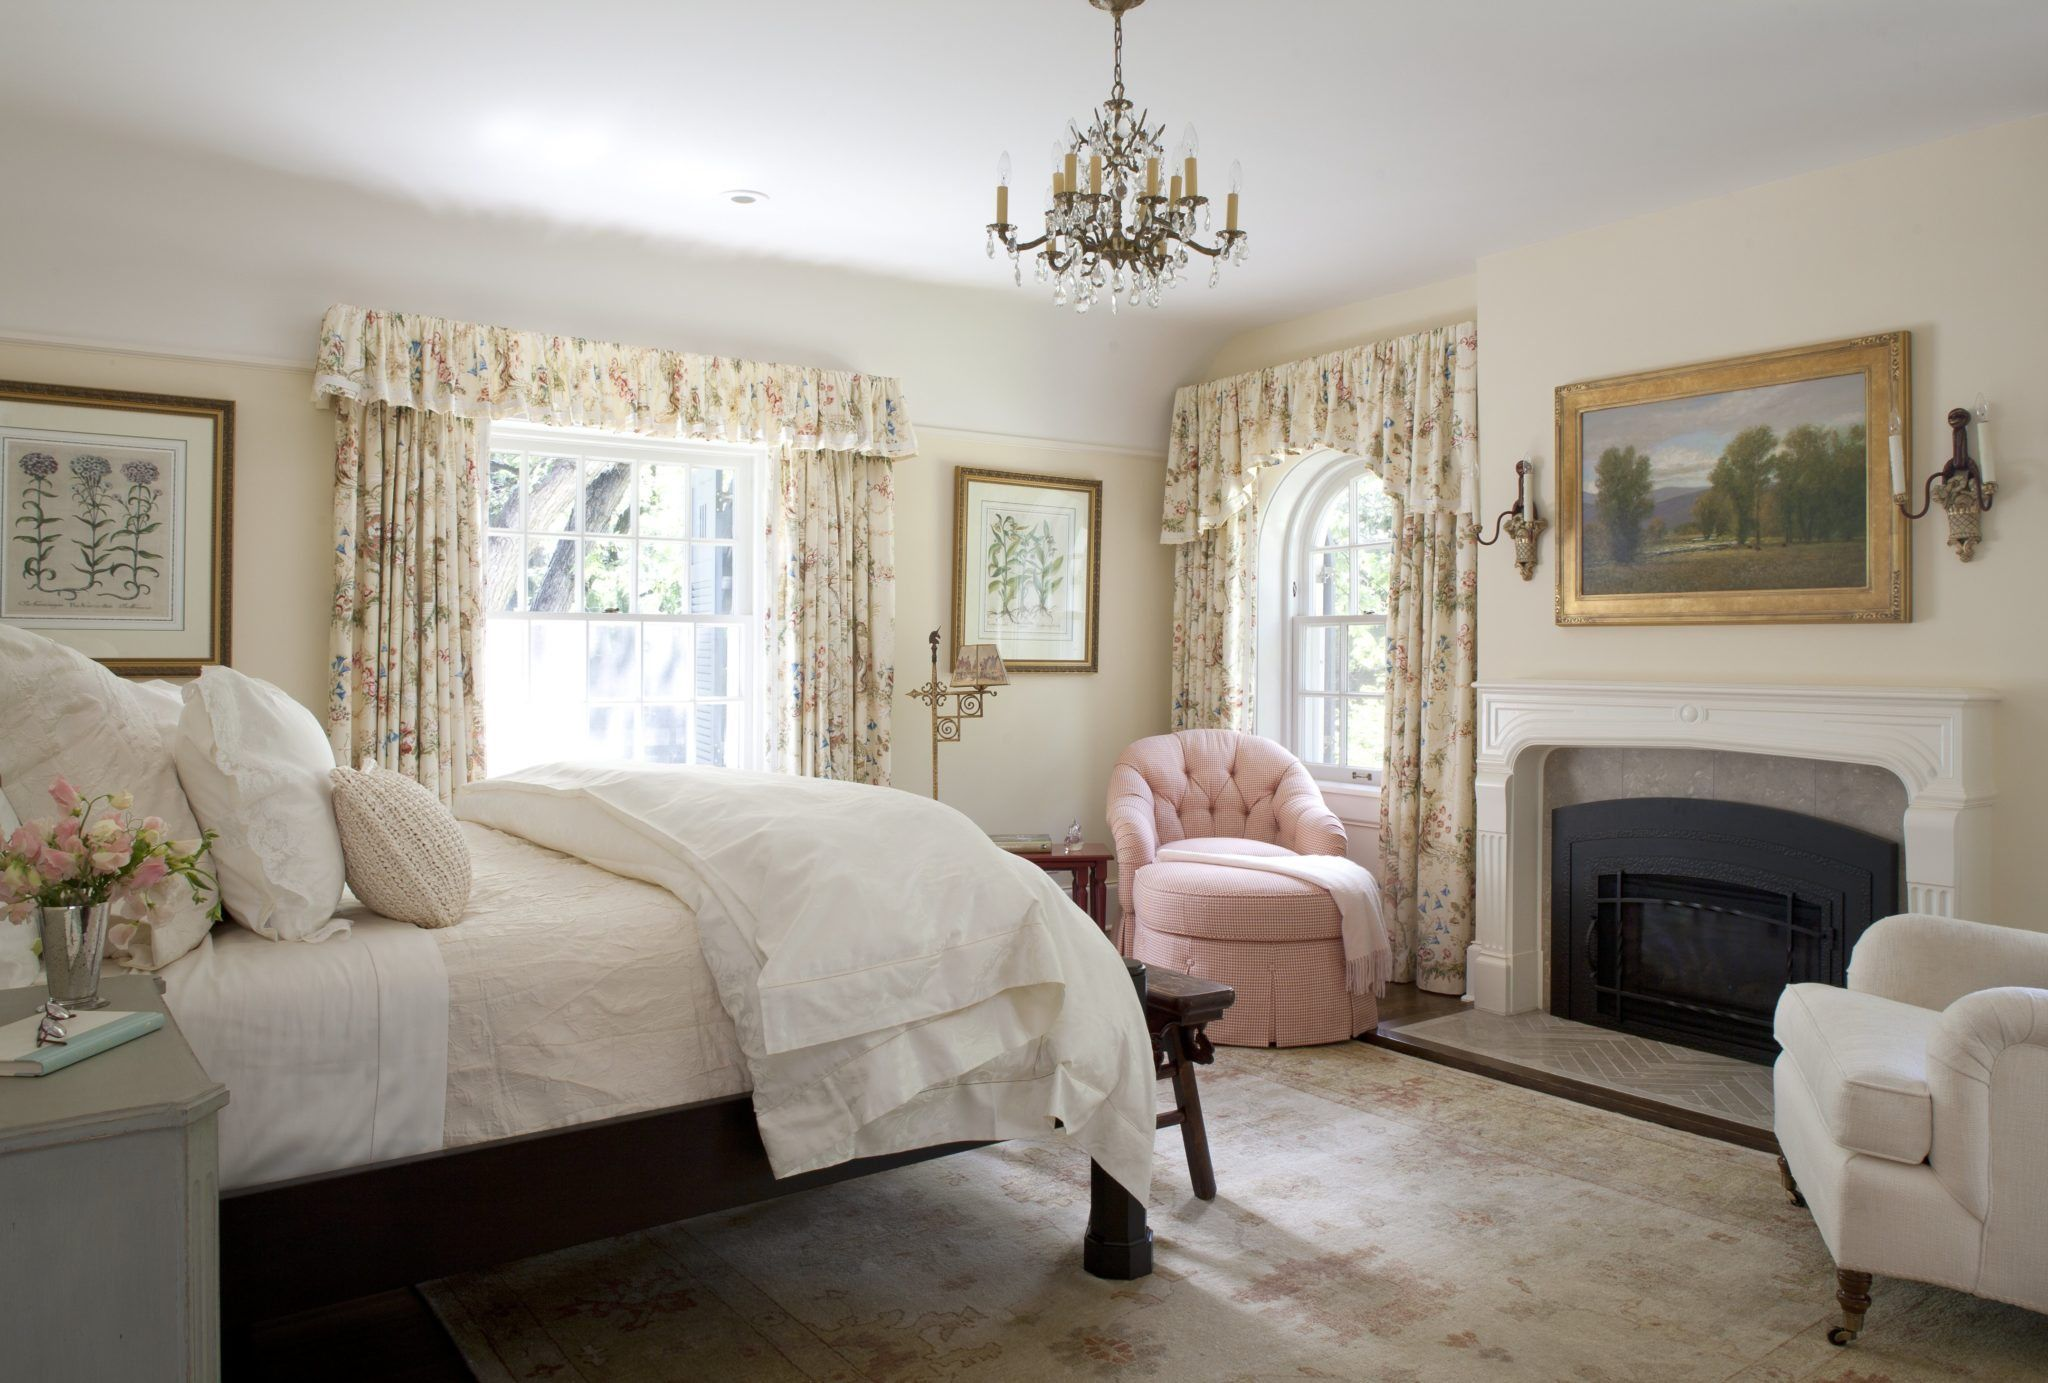 The Best Colors to Paint a Bedroom to Improve Sleep